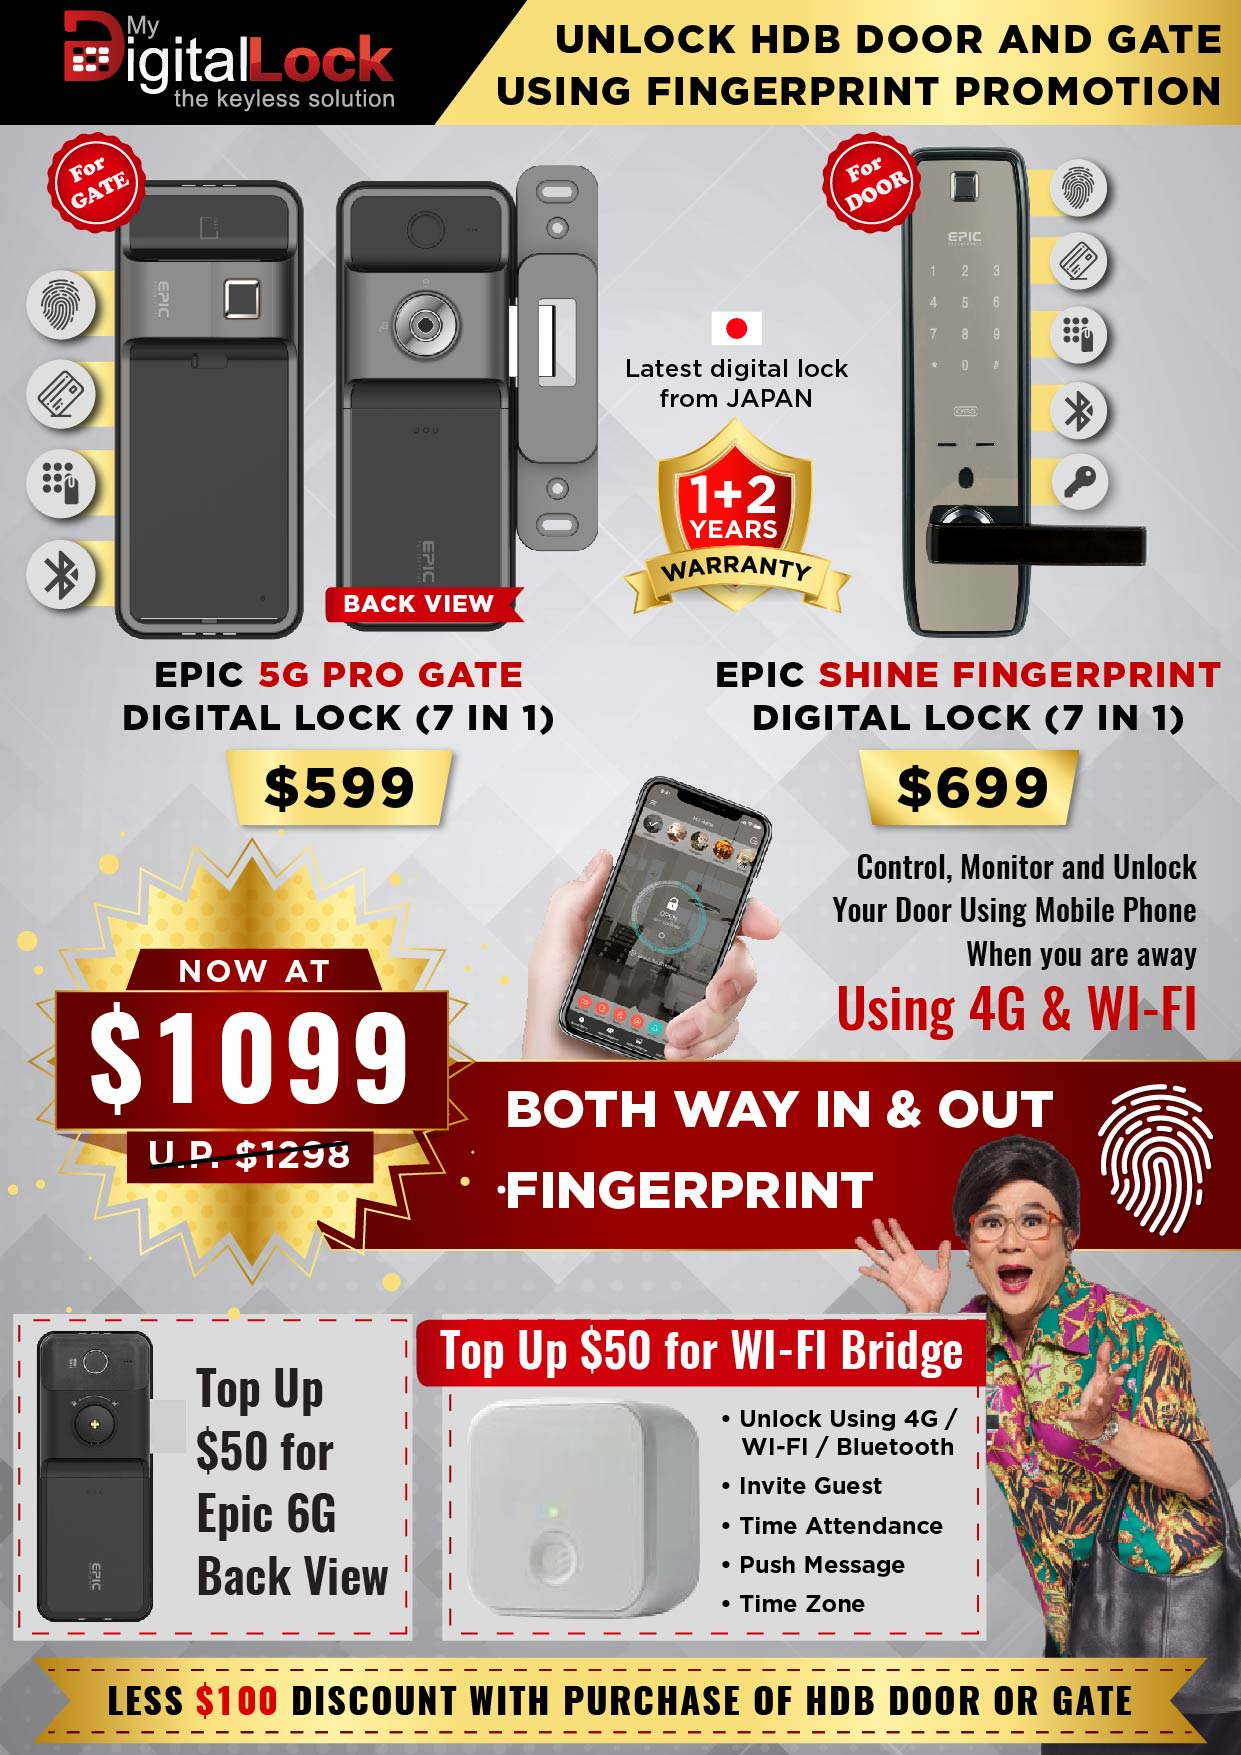 EPIC-5G-PRO-Gate-and-Shine-Fingerprint-Digital-Lock-Promotion